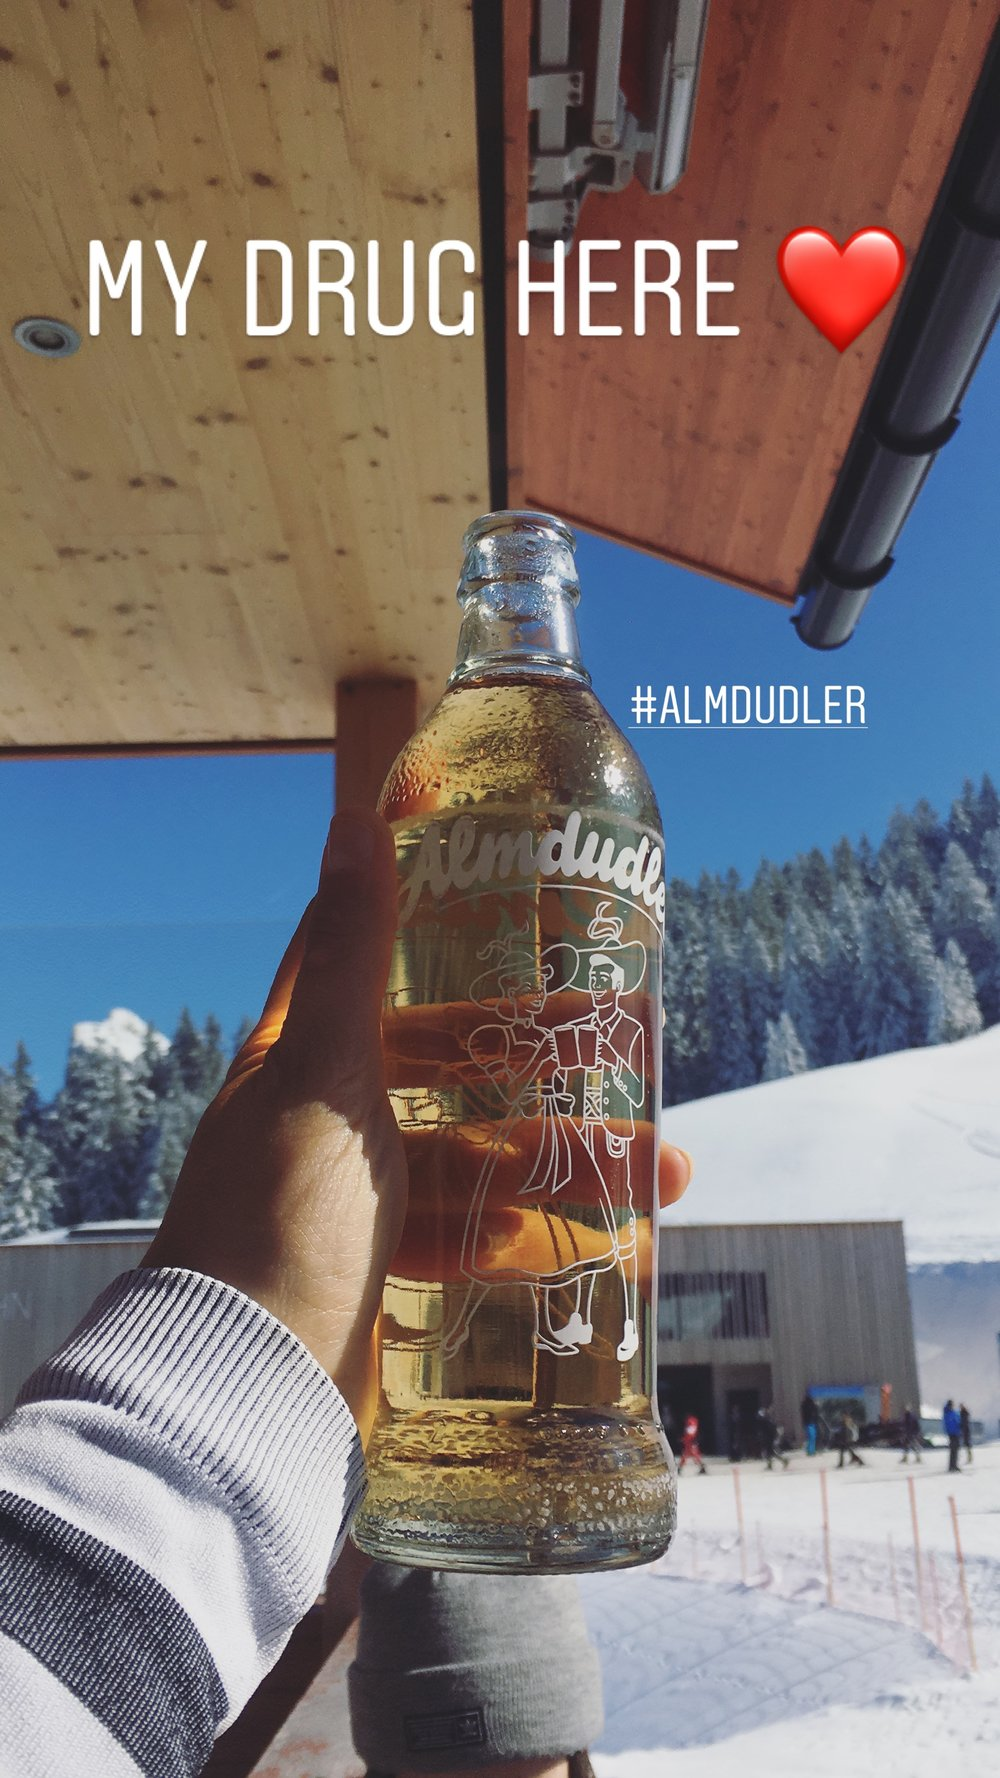 Sun, friends, music, sore legs and Almdudler... What else? - Life is hard.